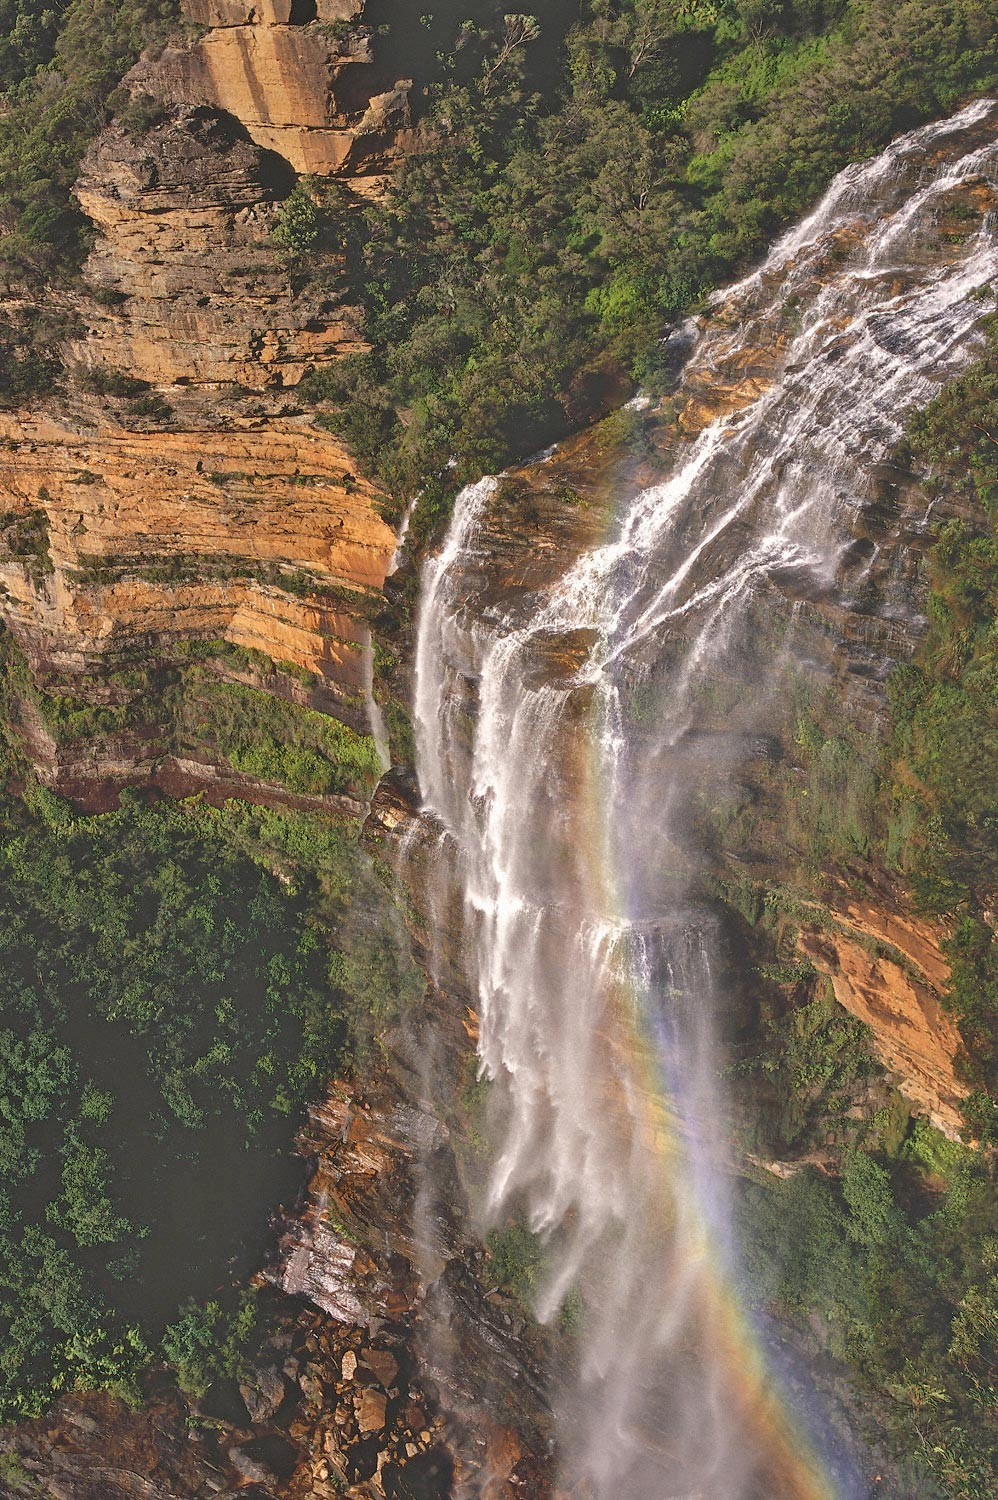 Warren-Hinder-LR-wenty-falls-rainbow.jpg